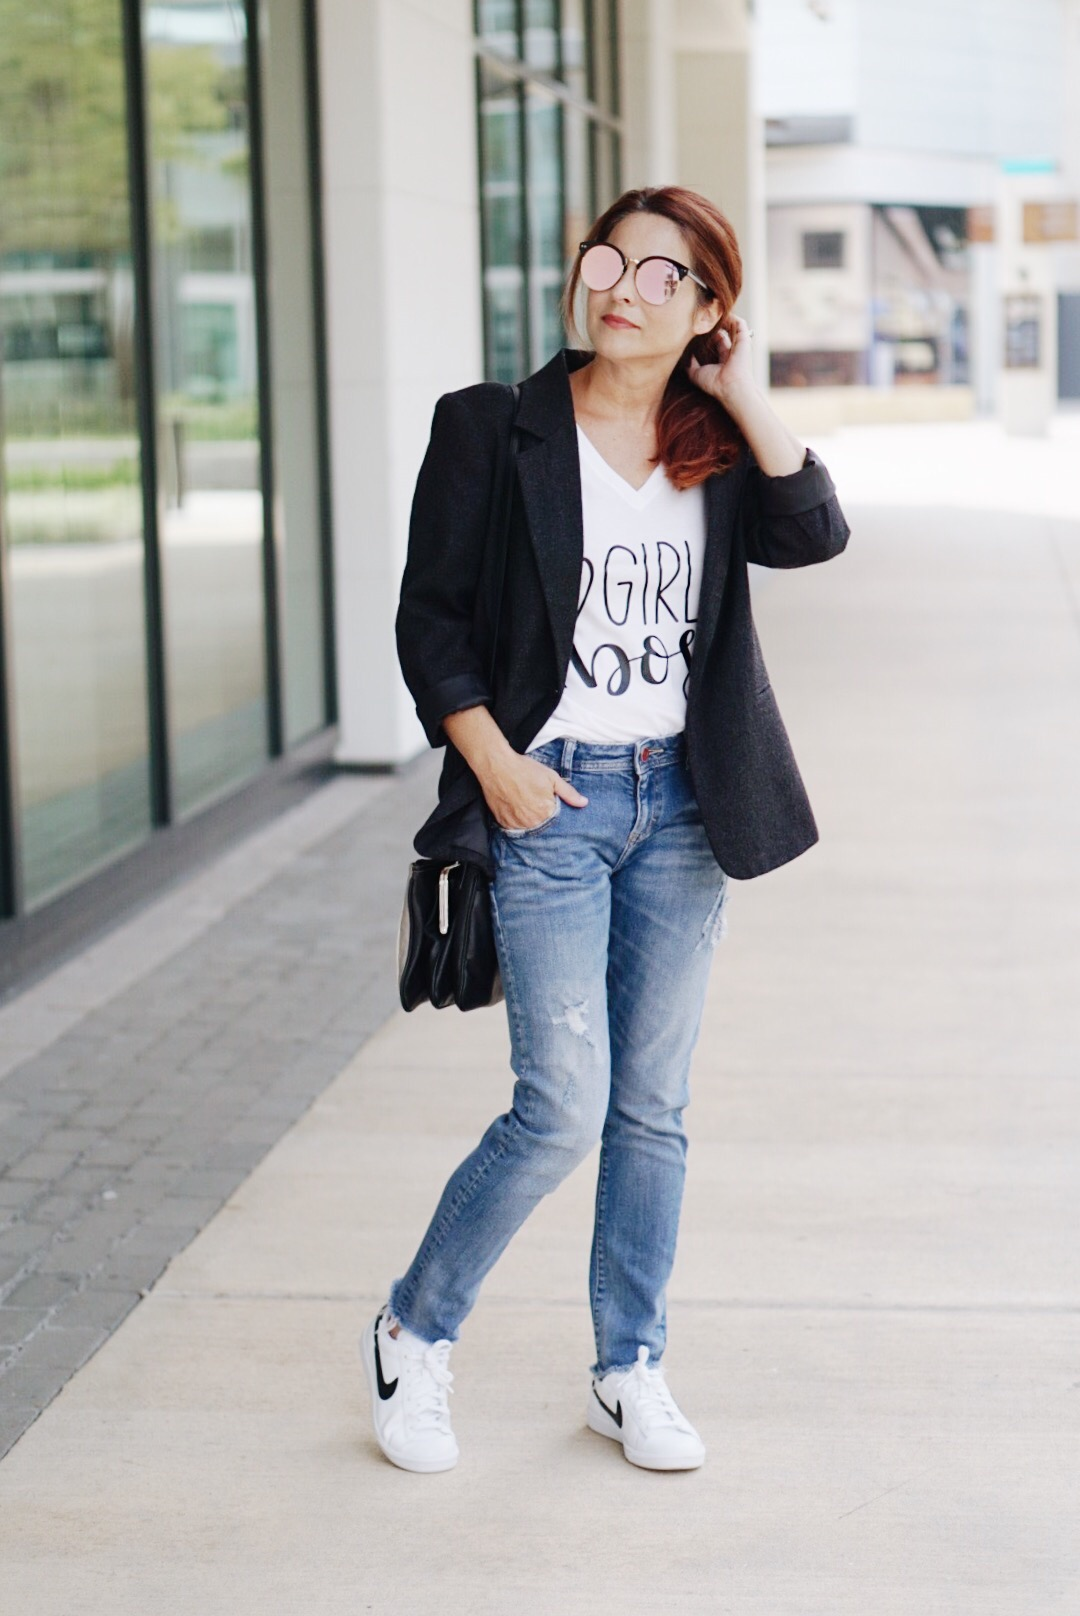 girl boss tee, menswear inspired, blazer and jeans, blazer and tennis shoes, nike sneakers